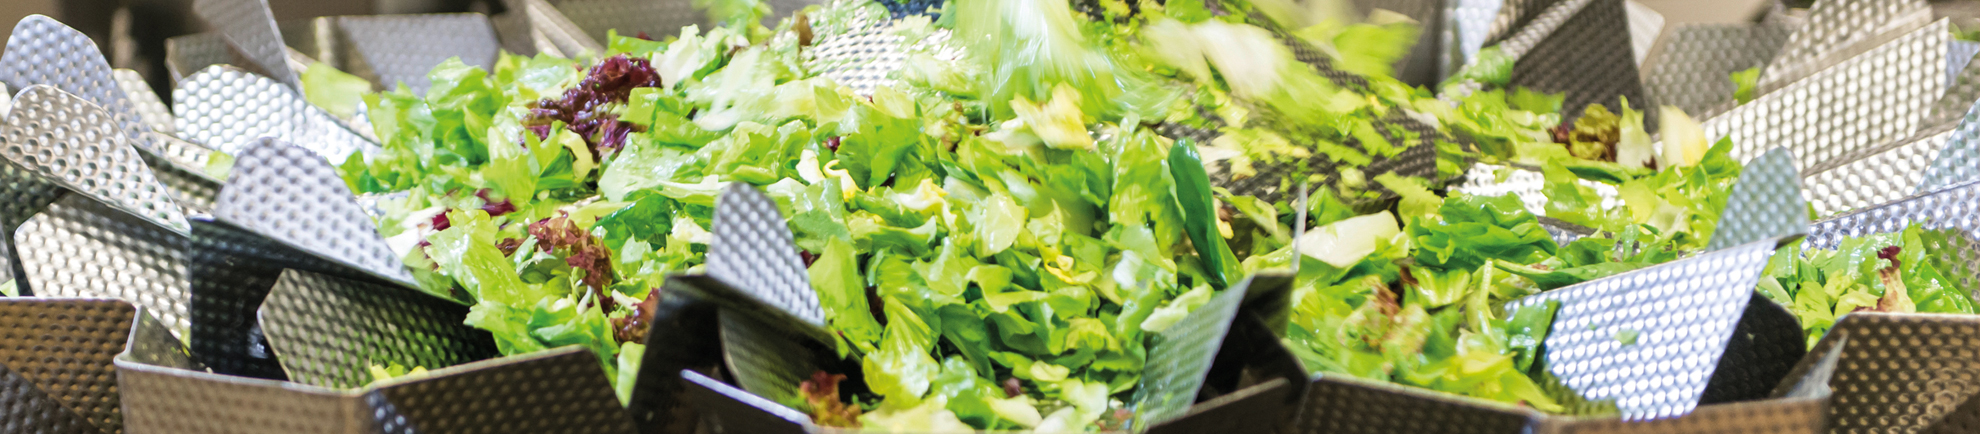 Improving shelflife: how cut leafy vegetables remain fresh longer